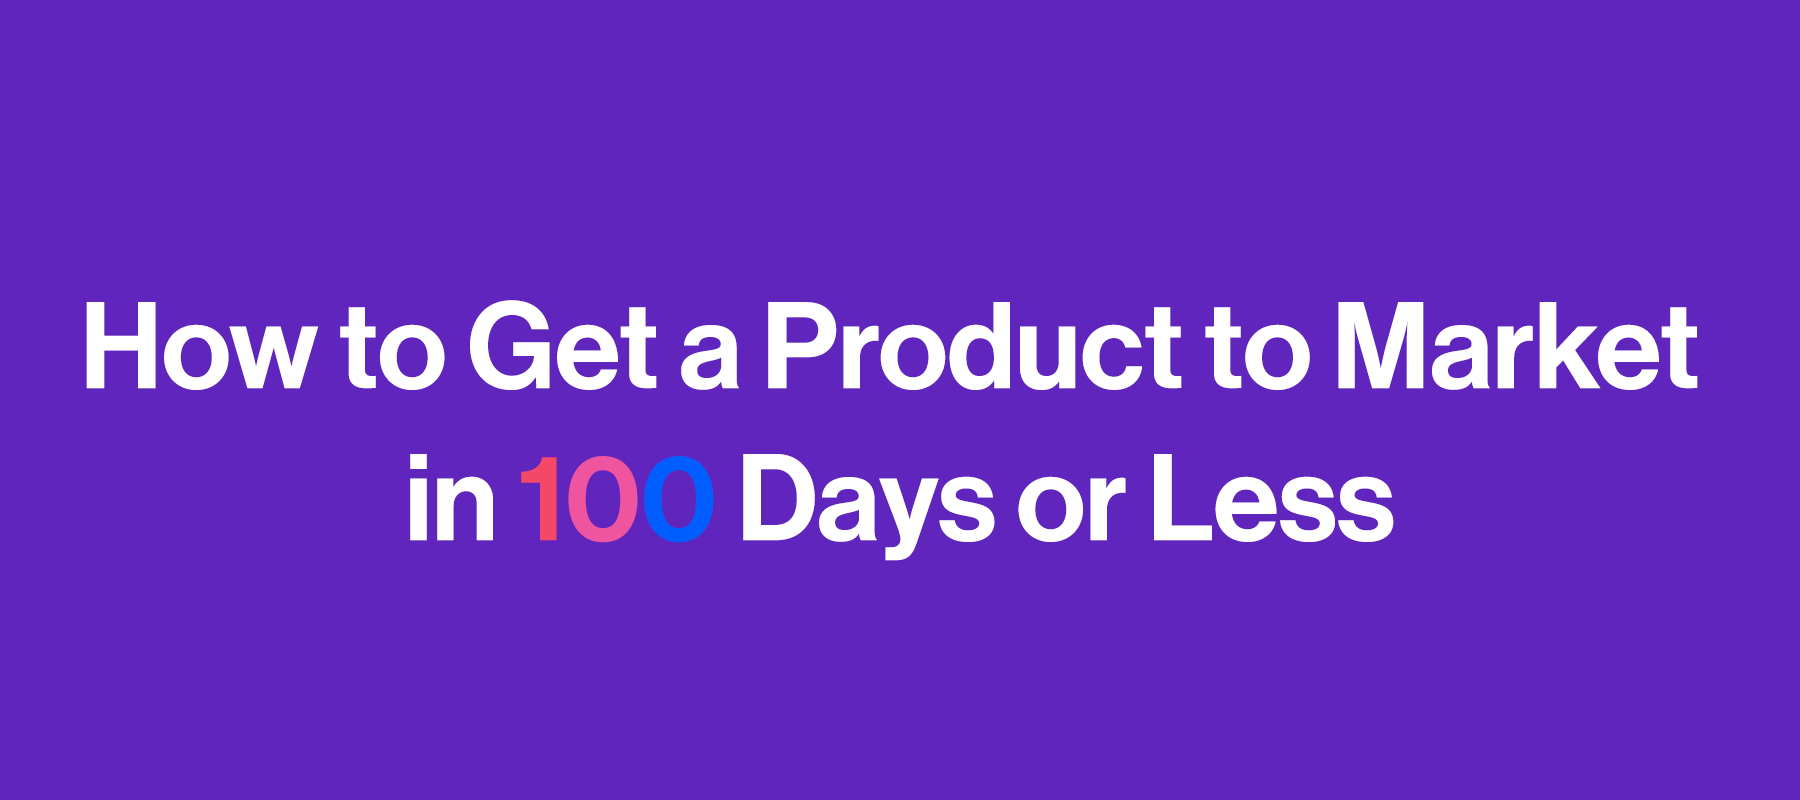 check the post:How to Get a Product to Market in 100 Days or Less for a description of the image